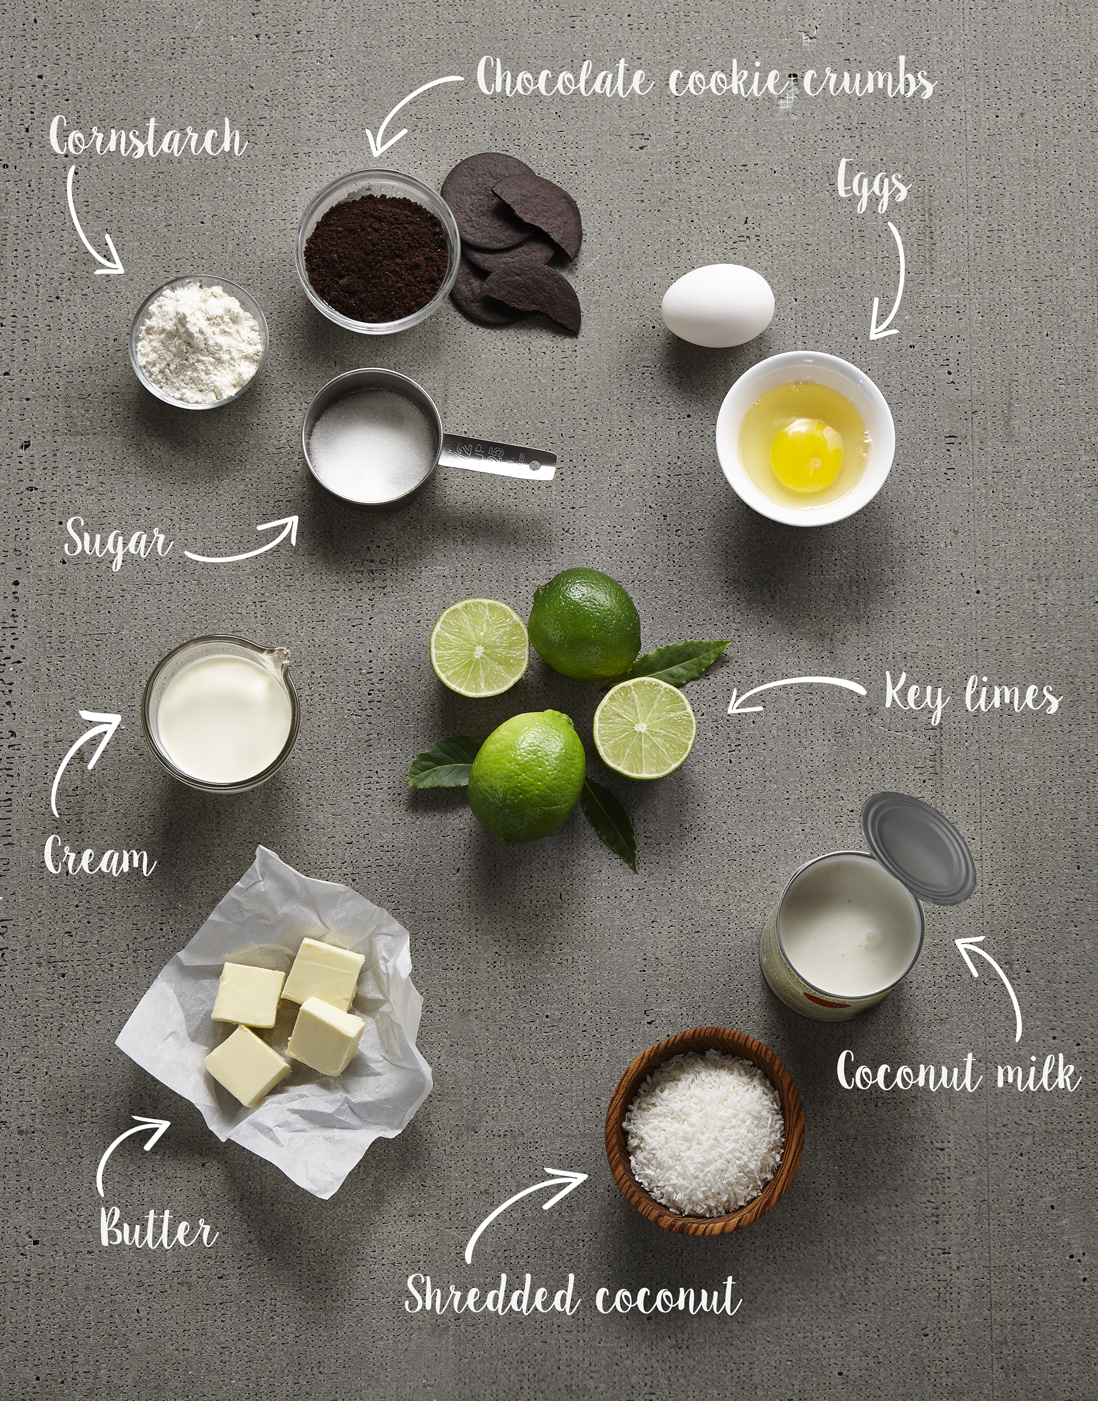 key-lime-pie-ingredients-en